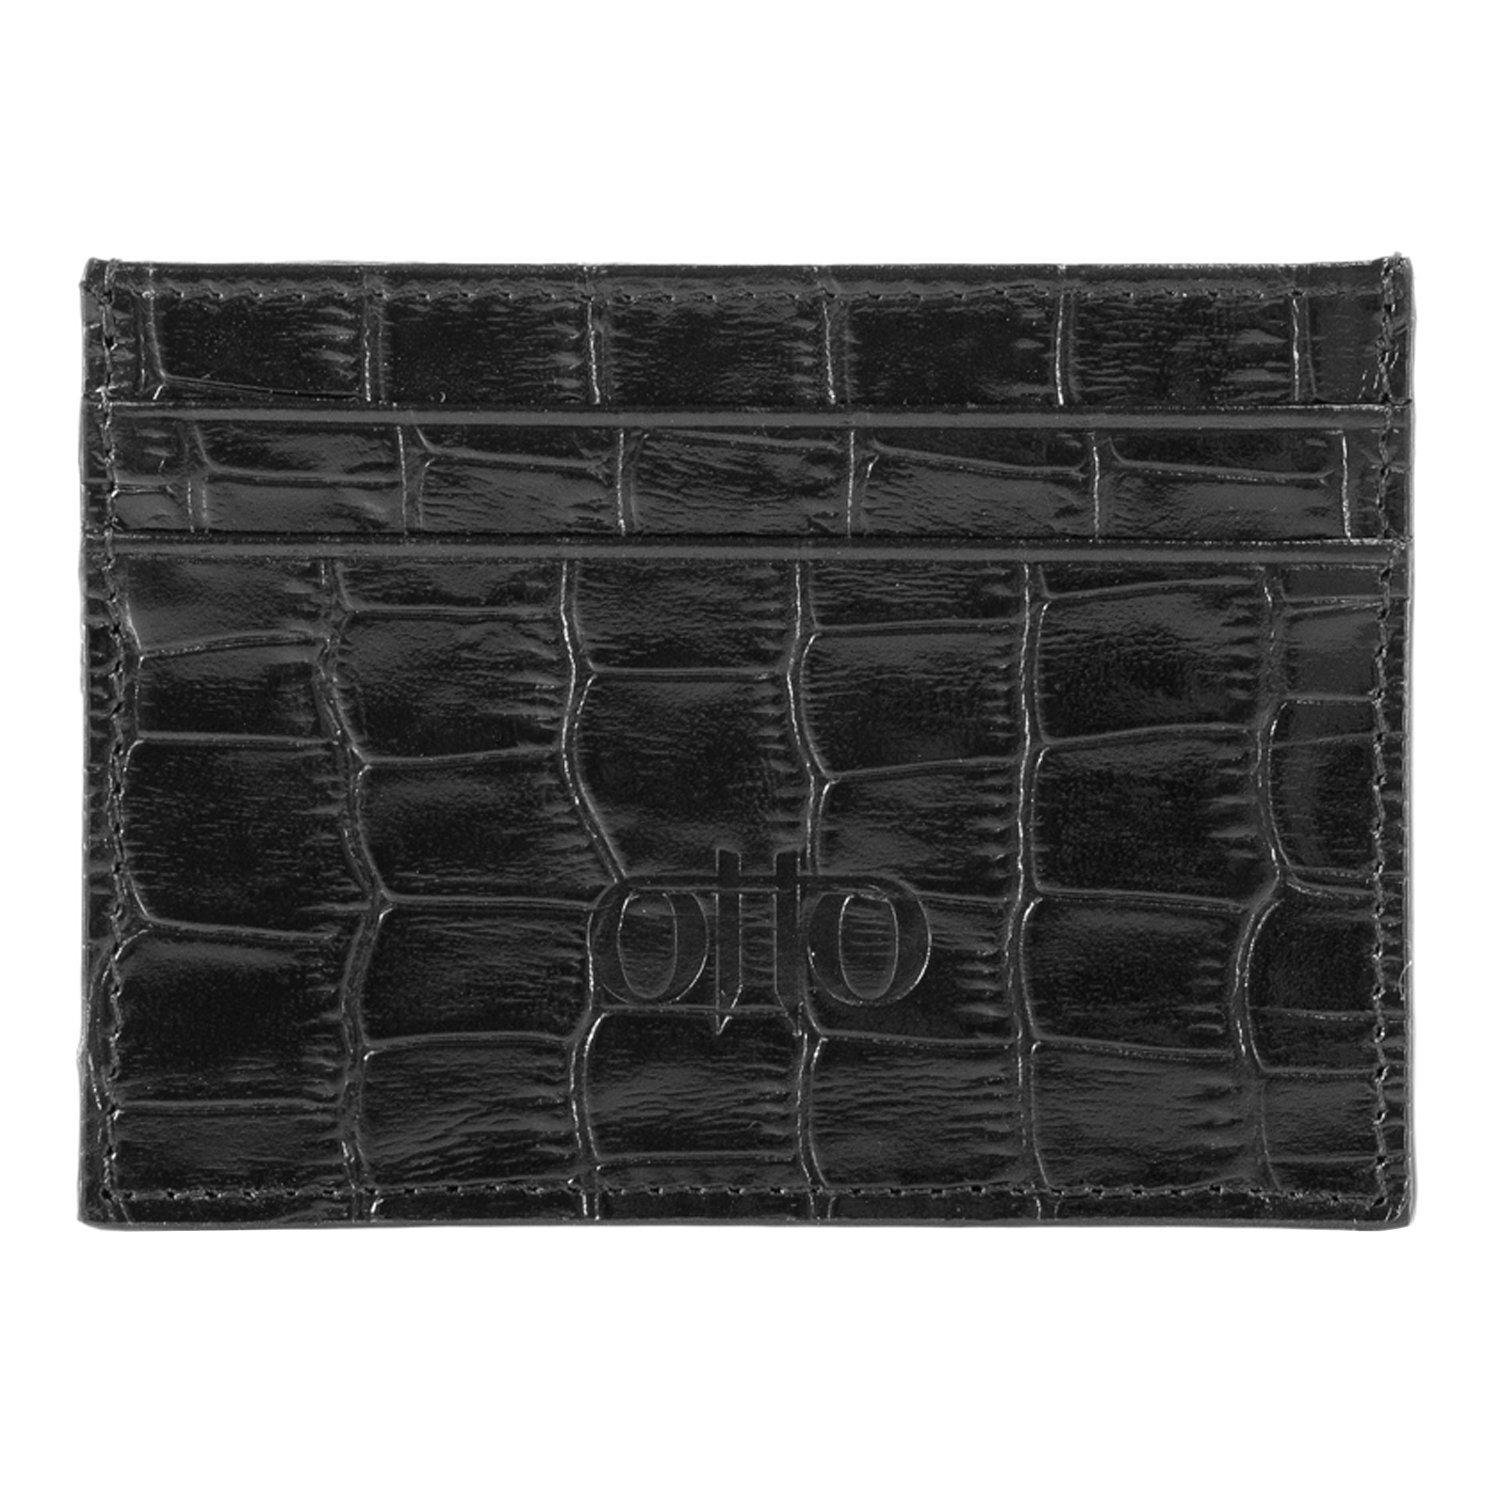 Otto Genuine Leather Wallet - Bank Cards, Money, Driver's License, RFID - Unisex (Pattern Black) Driver's License OTTO Leather OTTO16